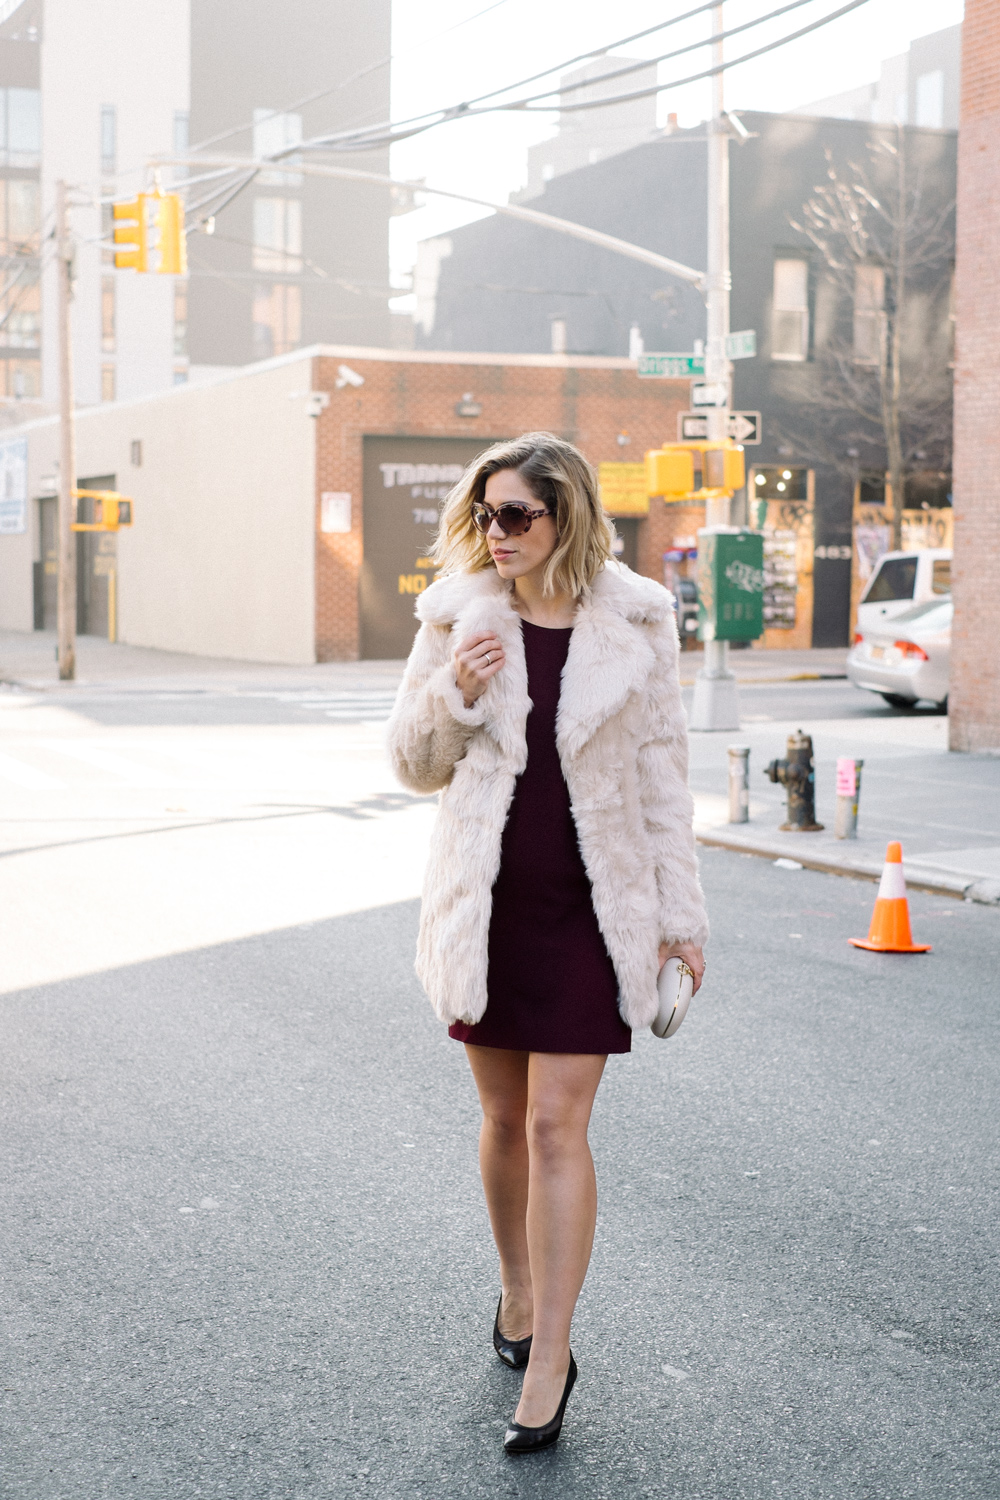 Burgundy Dress, Faux Fur Coat + Pumps  (see full outfit post here!)